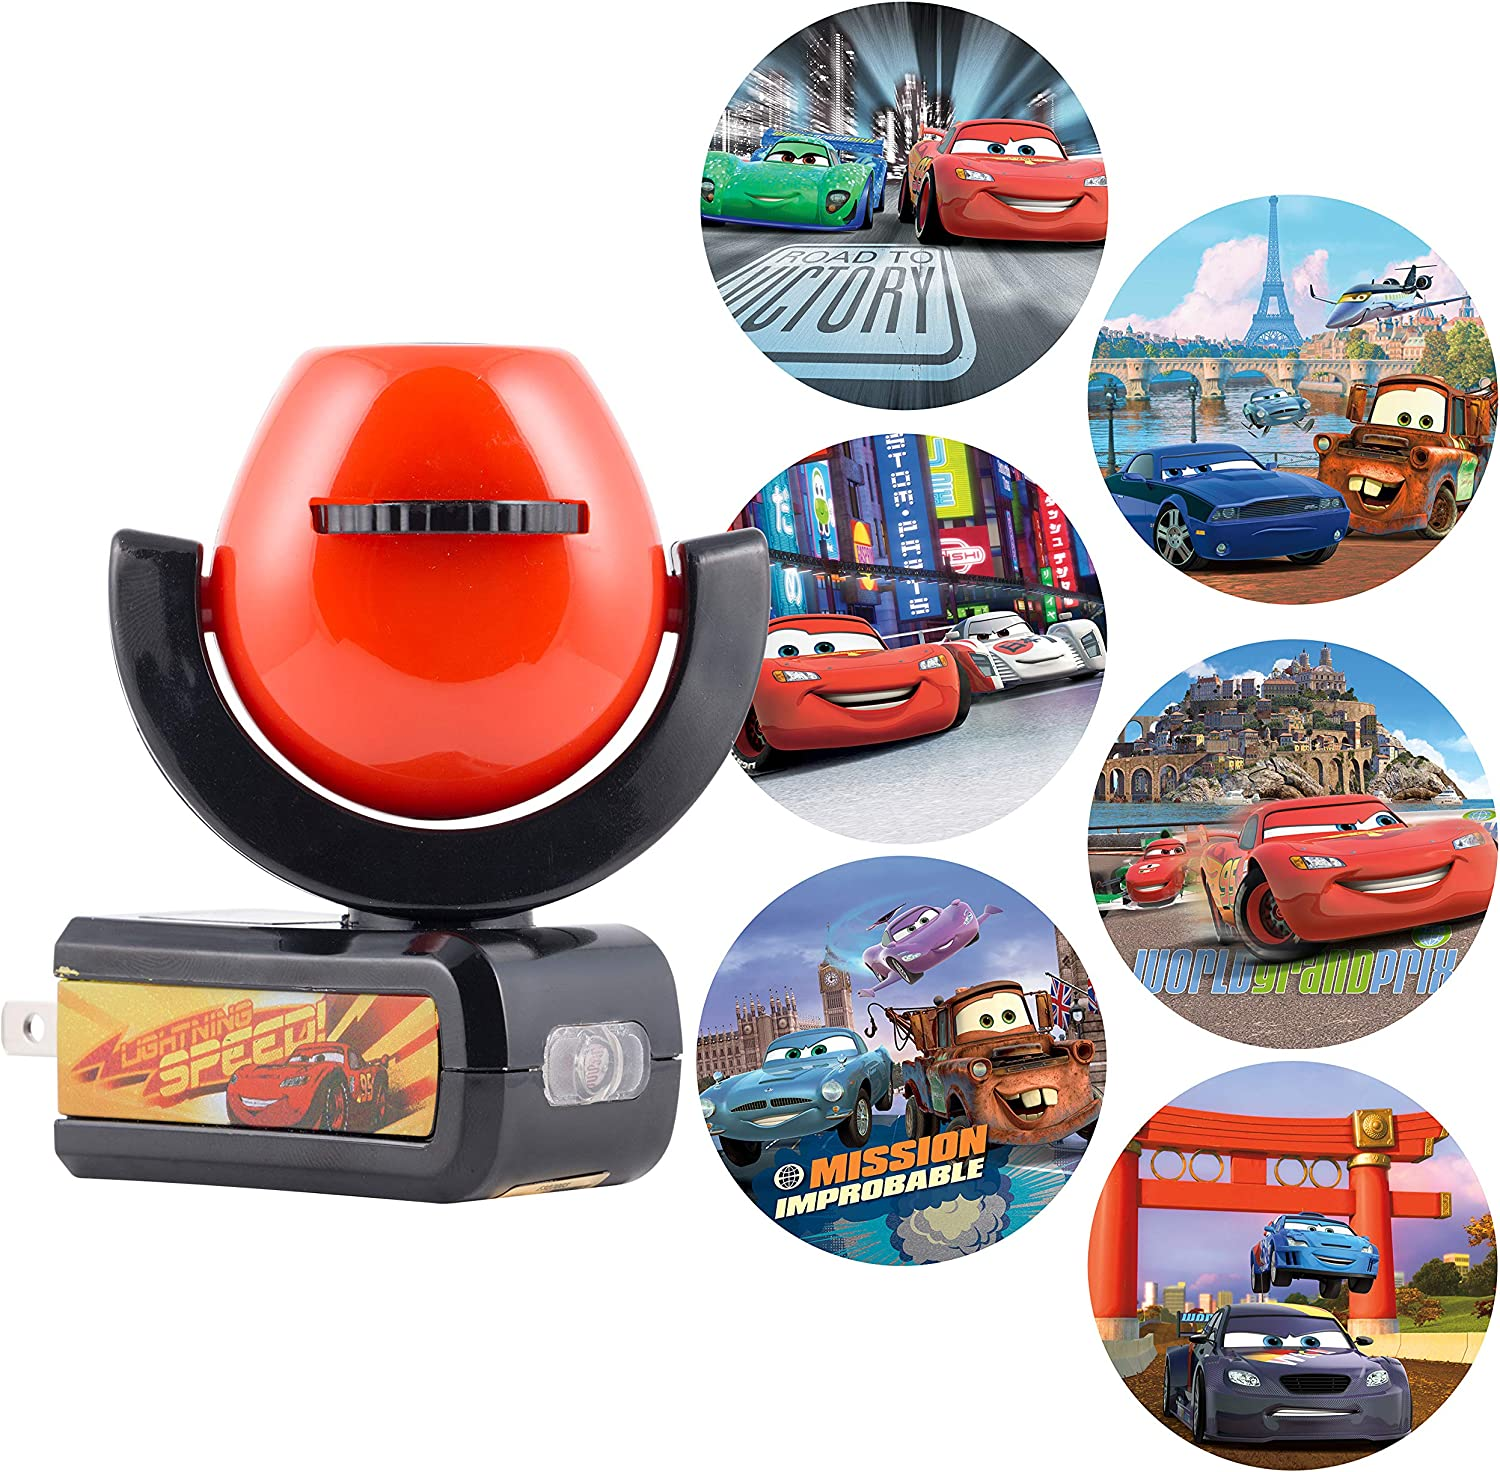 Projectables LED Night Light, Plug-in, Dusk-to-Dawn, for Kids, Lightning McQueen, Mater, Holly on Ceiling, Wall, or Floor, 11740, Cars | 6-Image